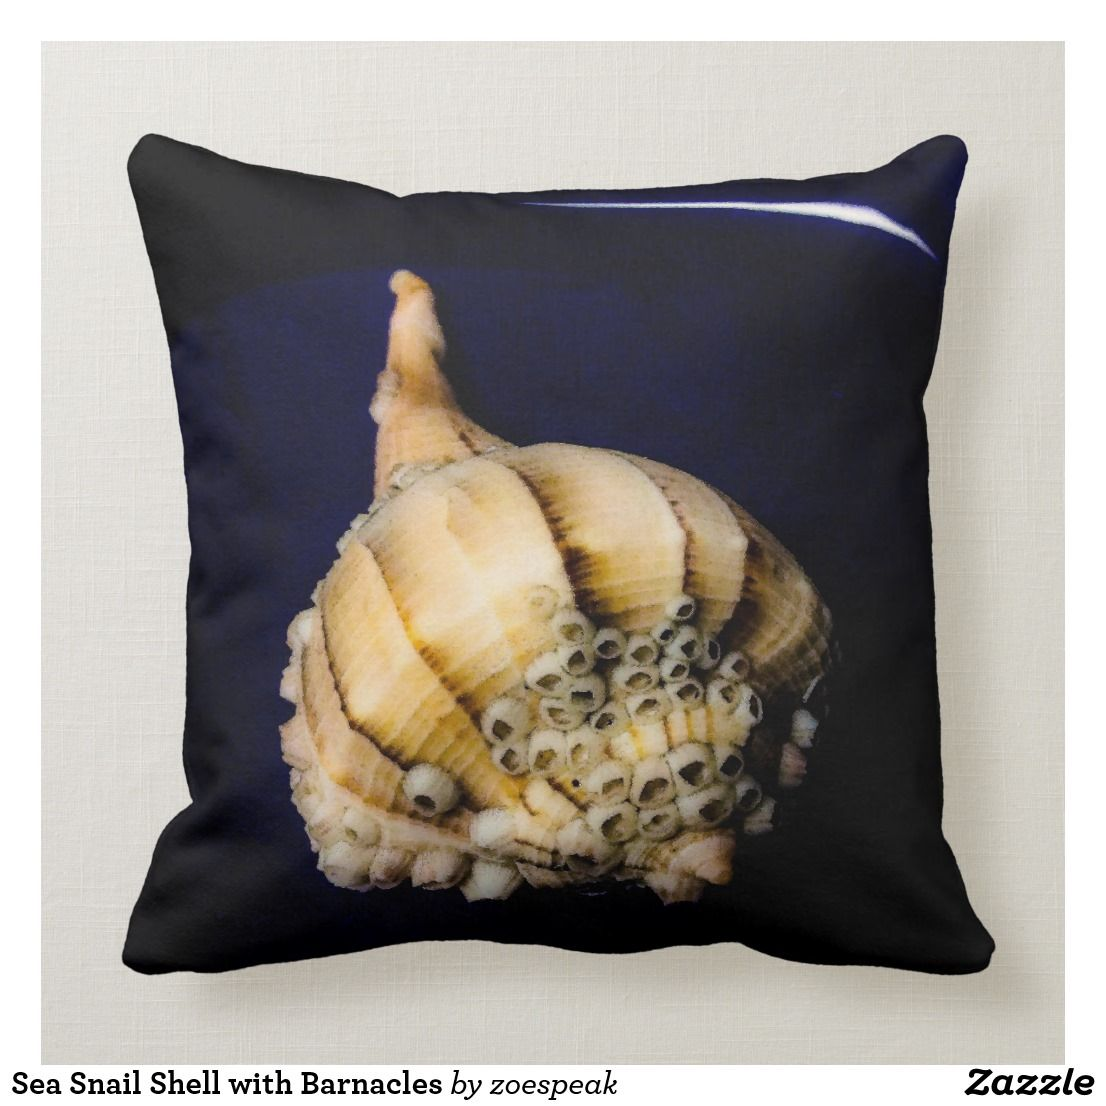 Sea Snail Shell With Barnacles Throw Pillow Zazzle Com Throw Pillows Pillows Designer Throw Pillows